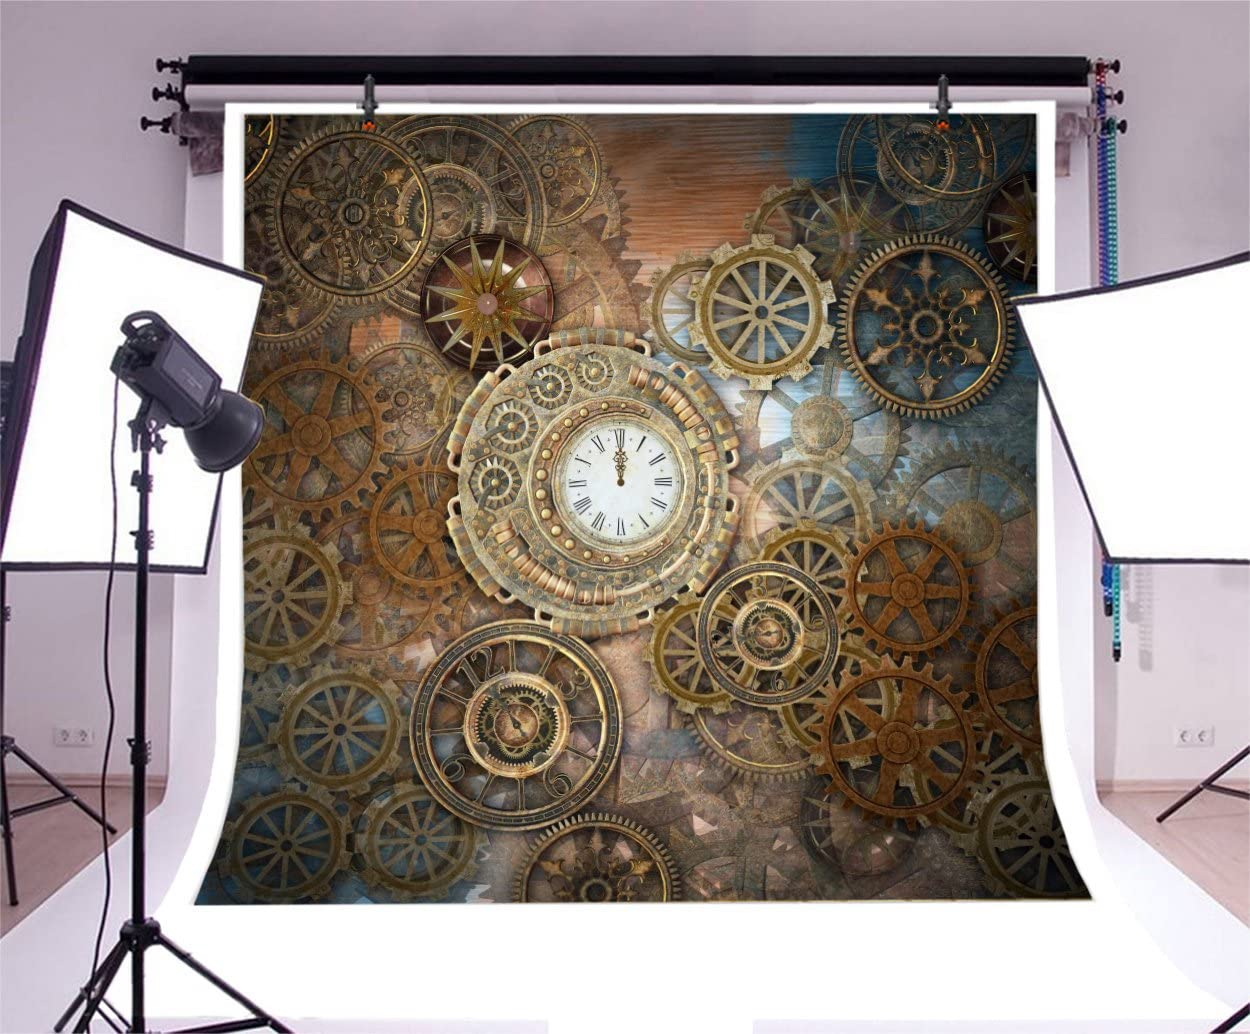 YEELE Rusty Steampunk Background 10x10ft Vintage Clock and Different Kinds of Gears Photography Backdrop Century Old Machinery Pictures Kids Adults Portrait Photoshoot Studio Props Digital Wallpaper